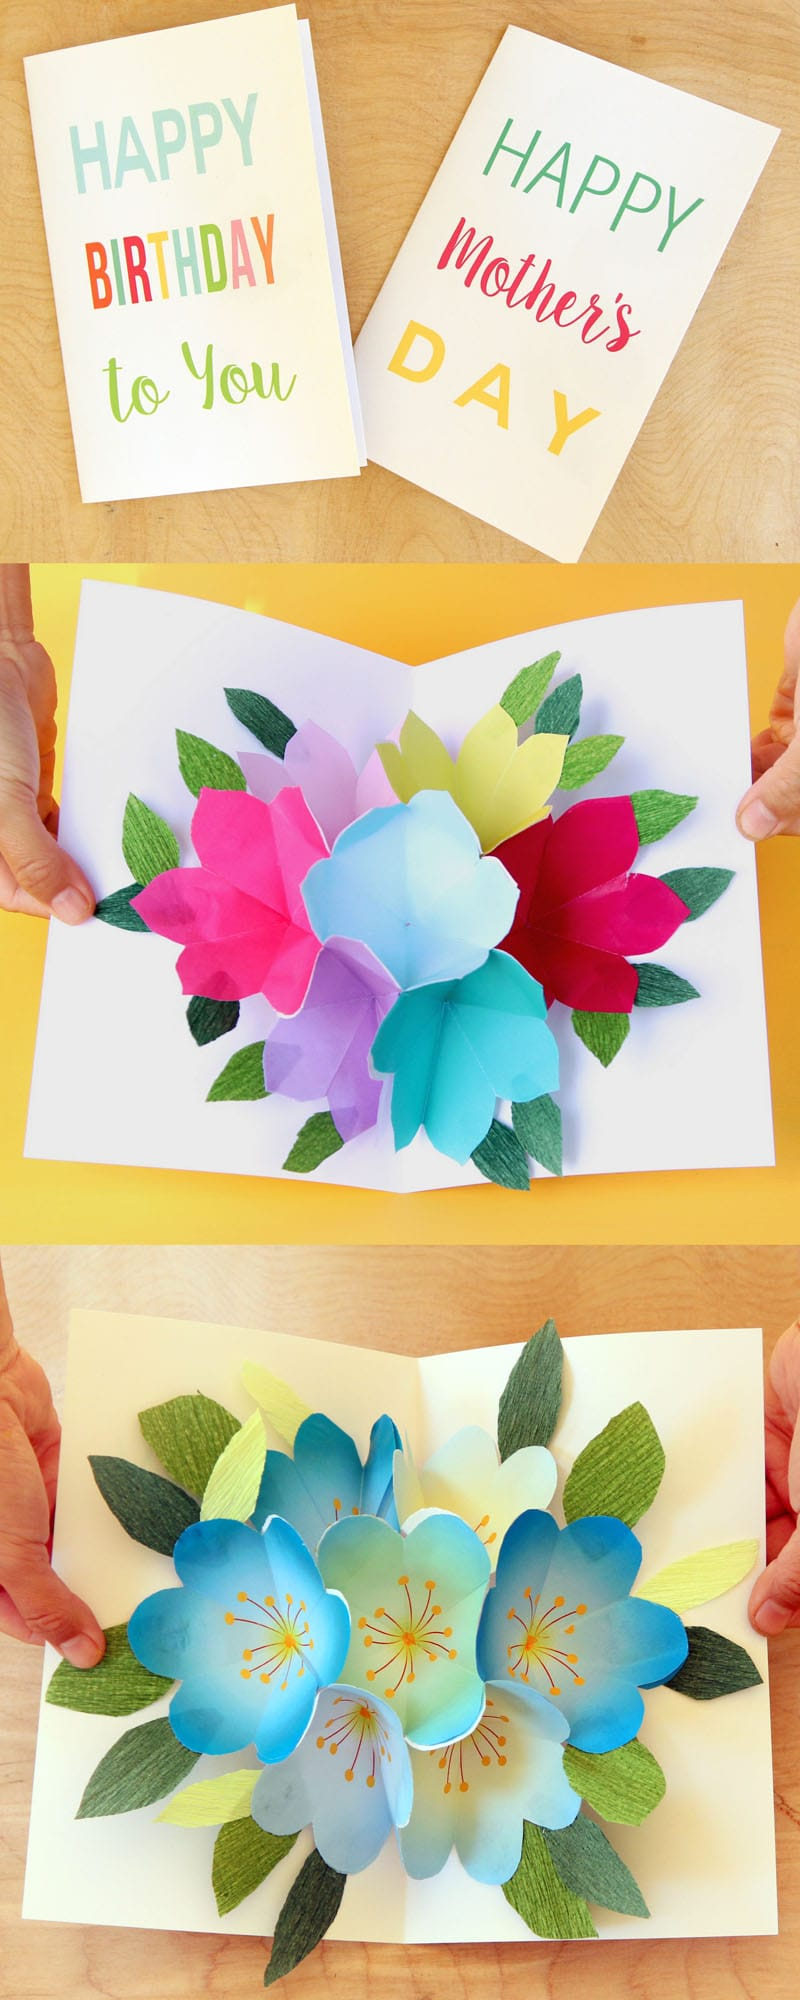 Free printable happy birthday card with pop up bouquet a piece of you can make this easy and free printable birthday card in less than an hour oh and the best part a big bouquet pops right out when your loved one opens bookmarktalkfo